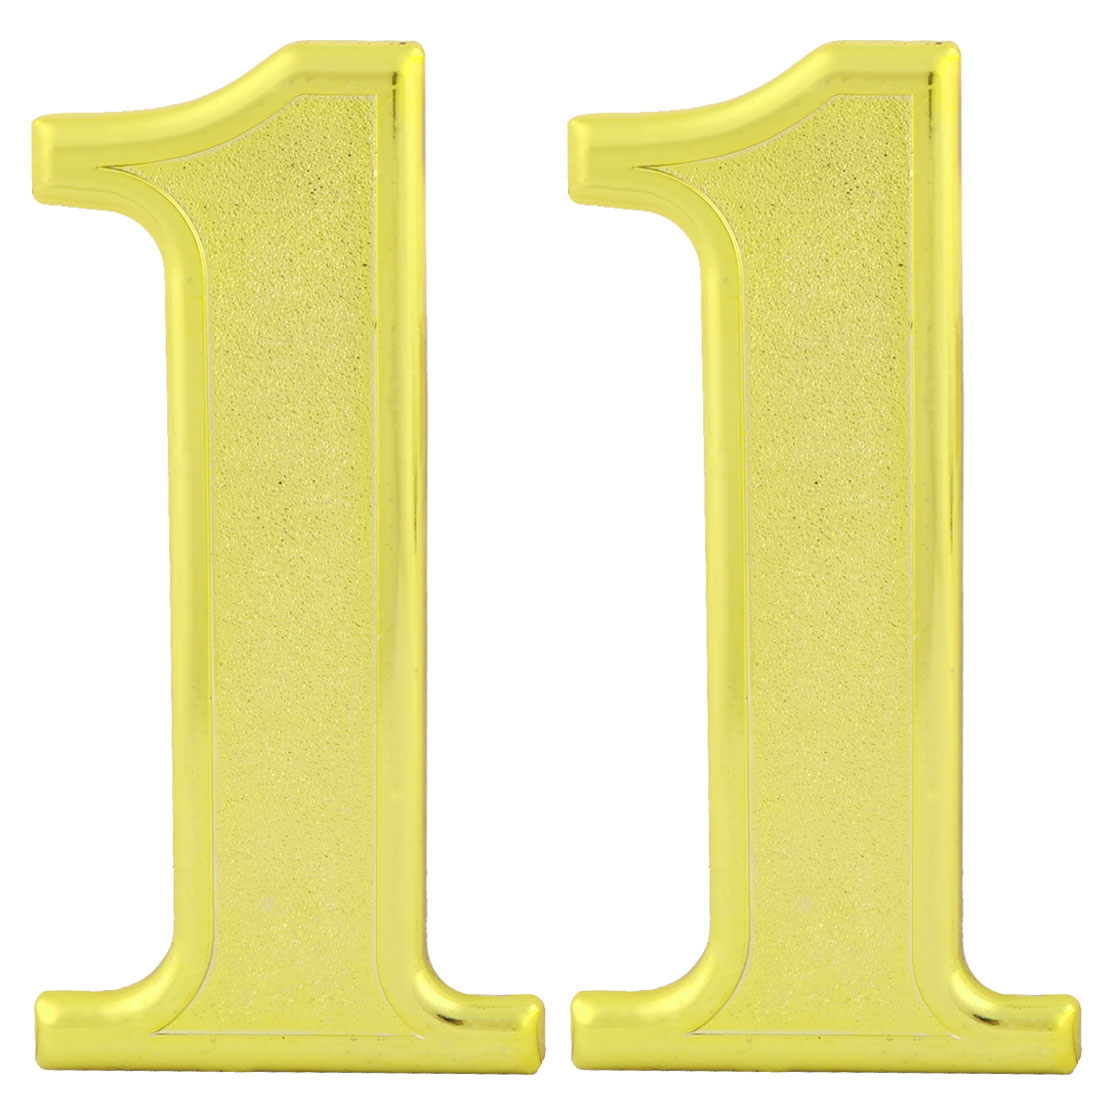 Home Door Plastic 1 Shaped Self Adhesive Plate Sign Number Label Gold Tone 2pcs